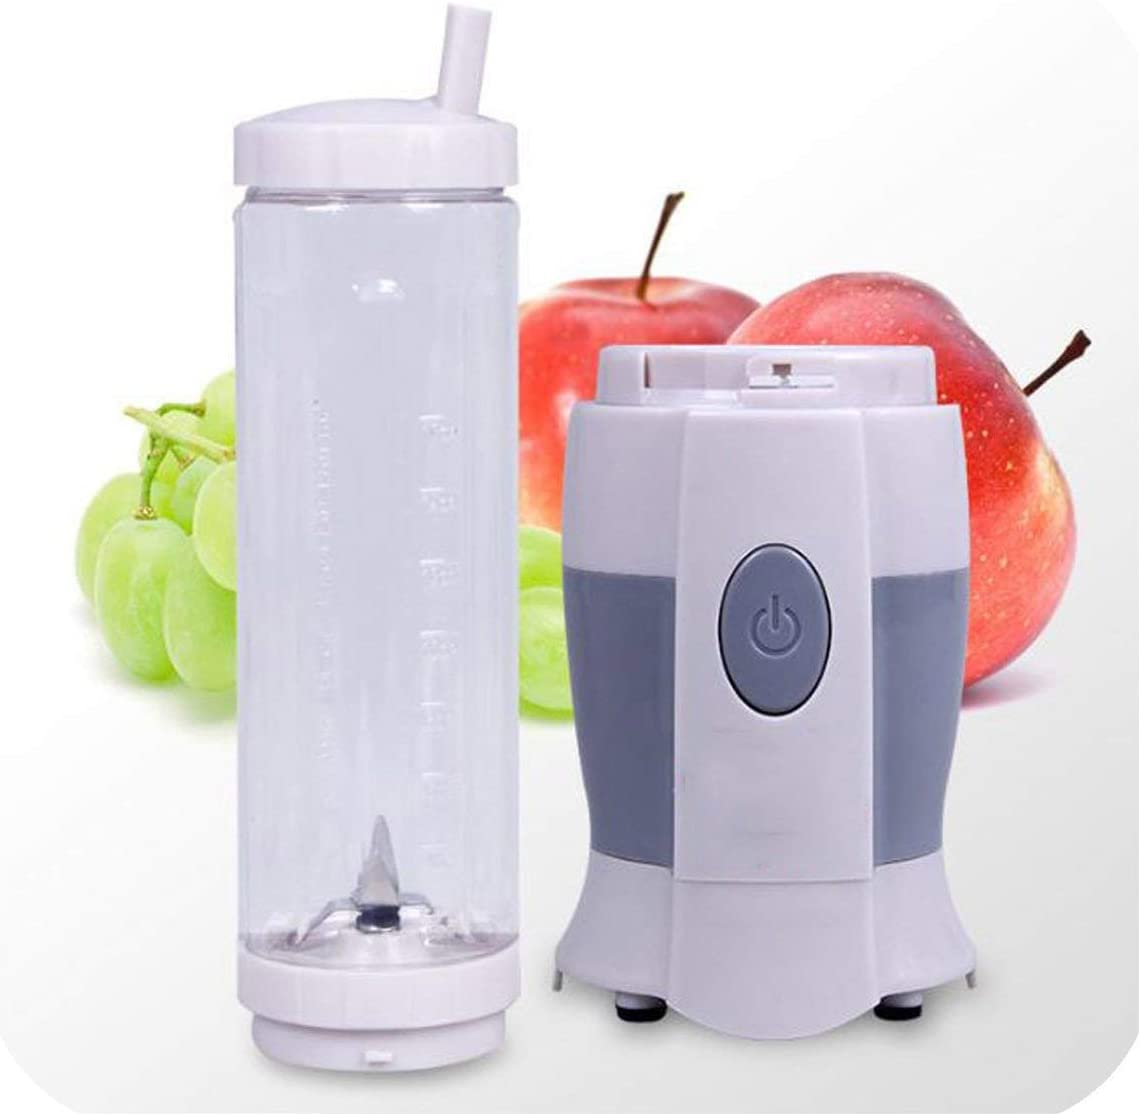 1pcs/lot Plug Shake N Take Juice Machine Multifunctional Mini Electricity Juicer Pocket Sports Bottle Blender